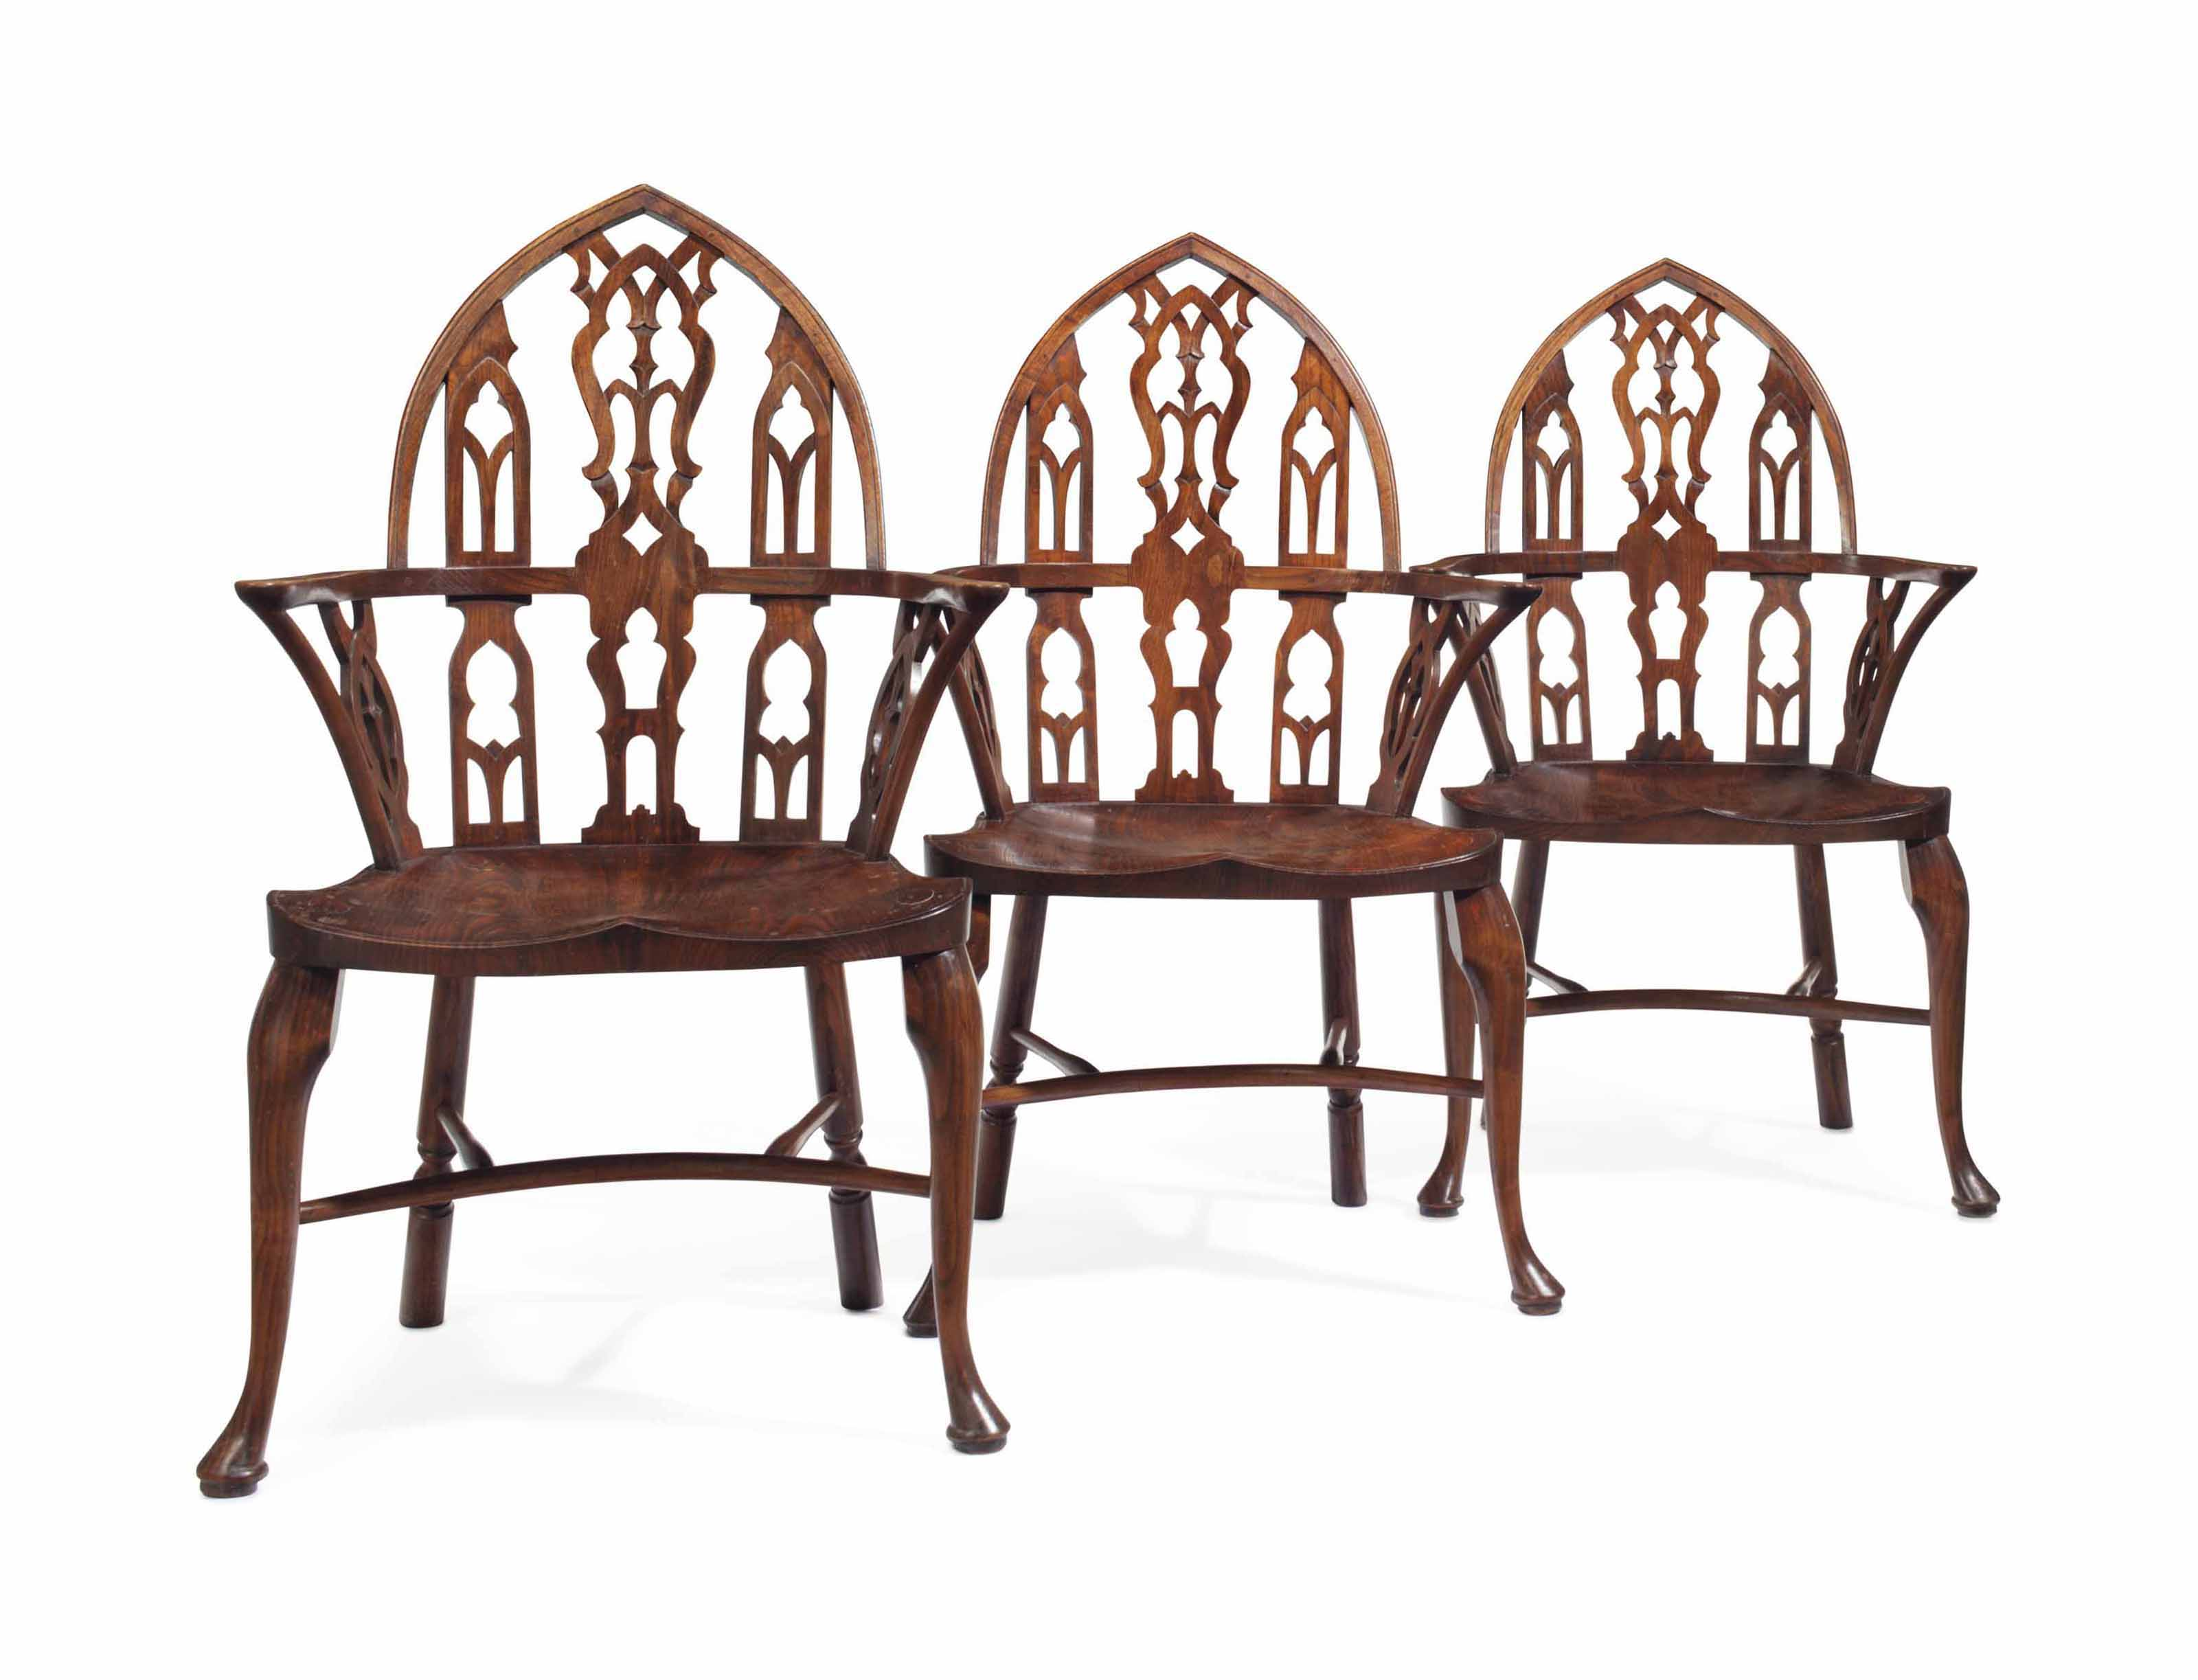 A SET OF THREE GEORGE III-STYLE YEW GOTHIC WINDSOR ARMCHAIRS